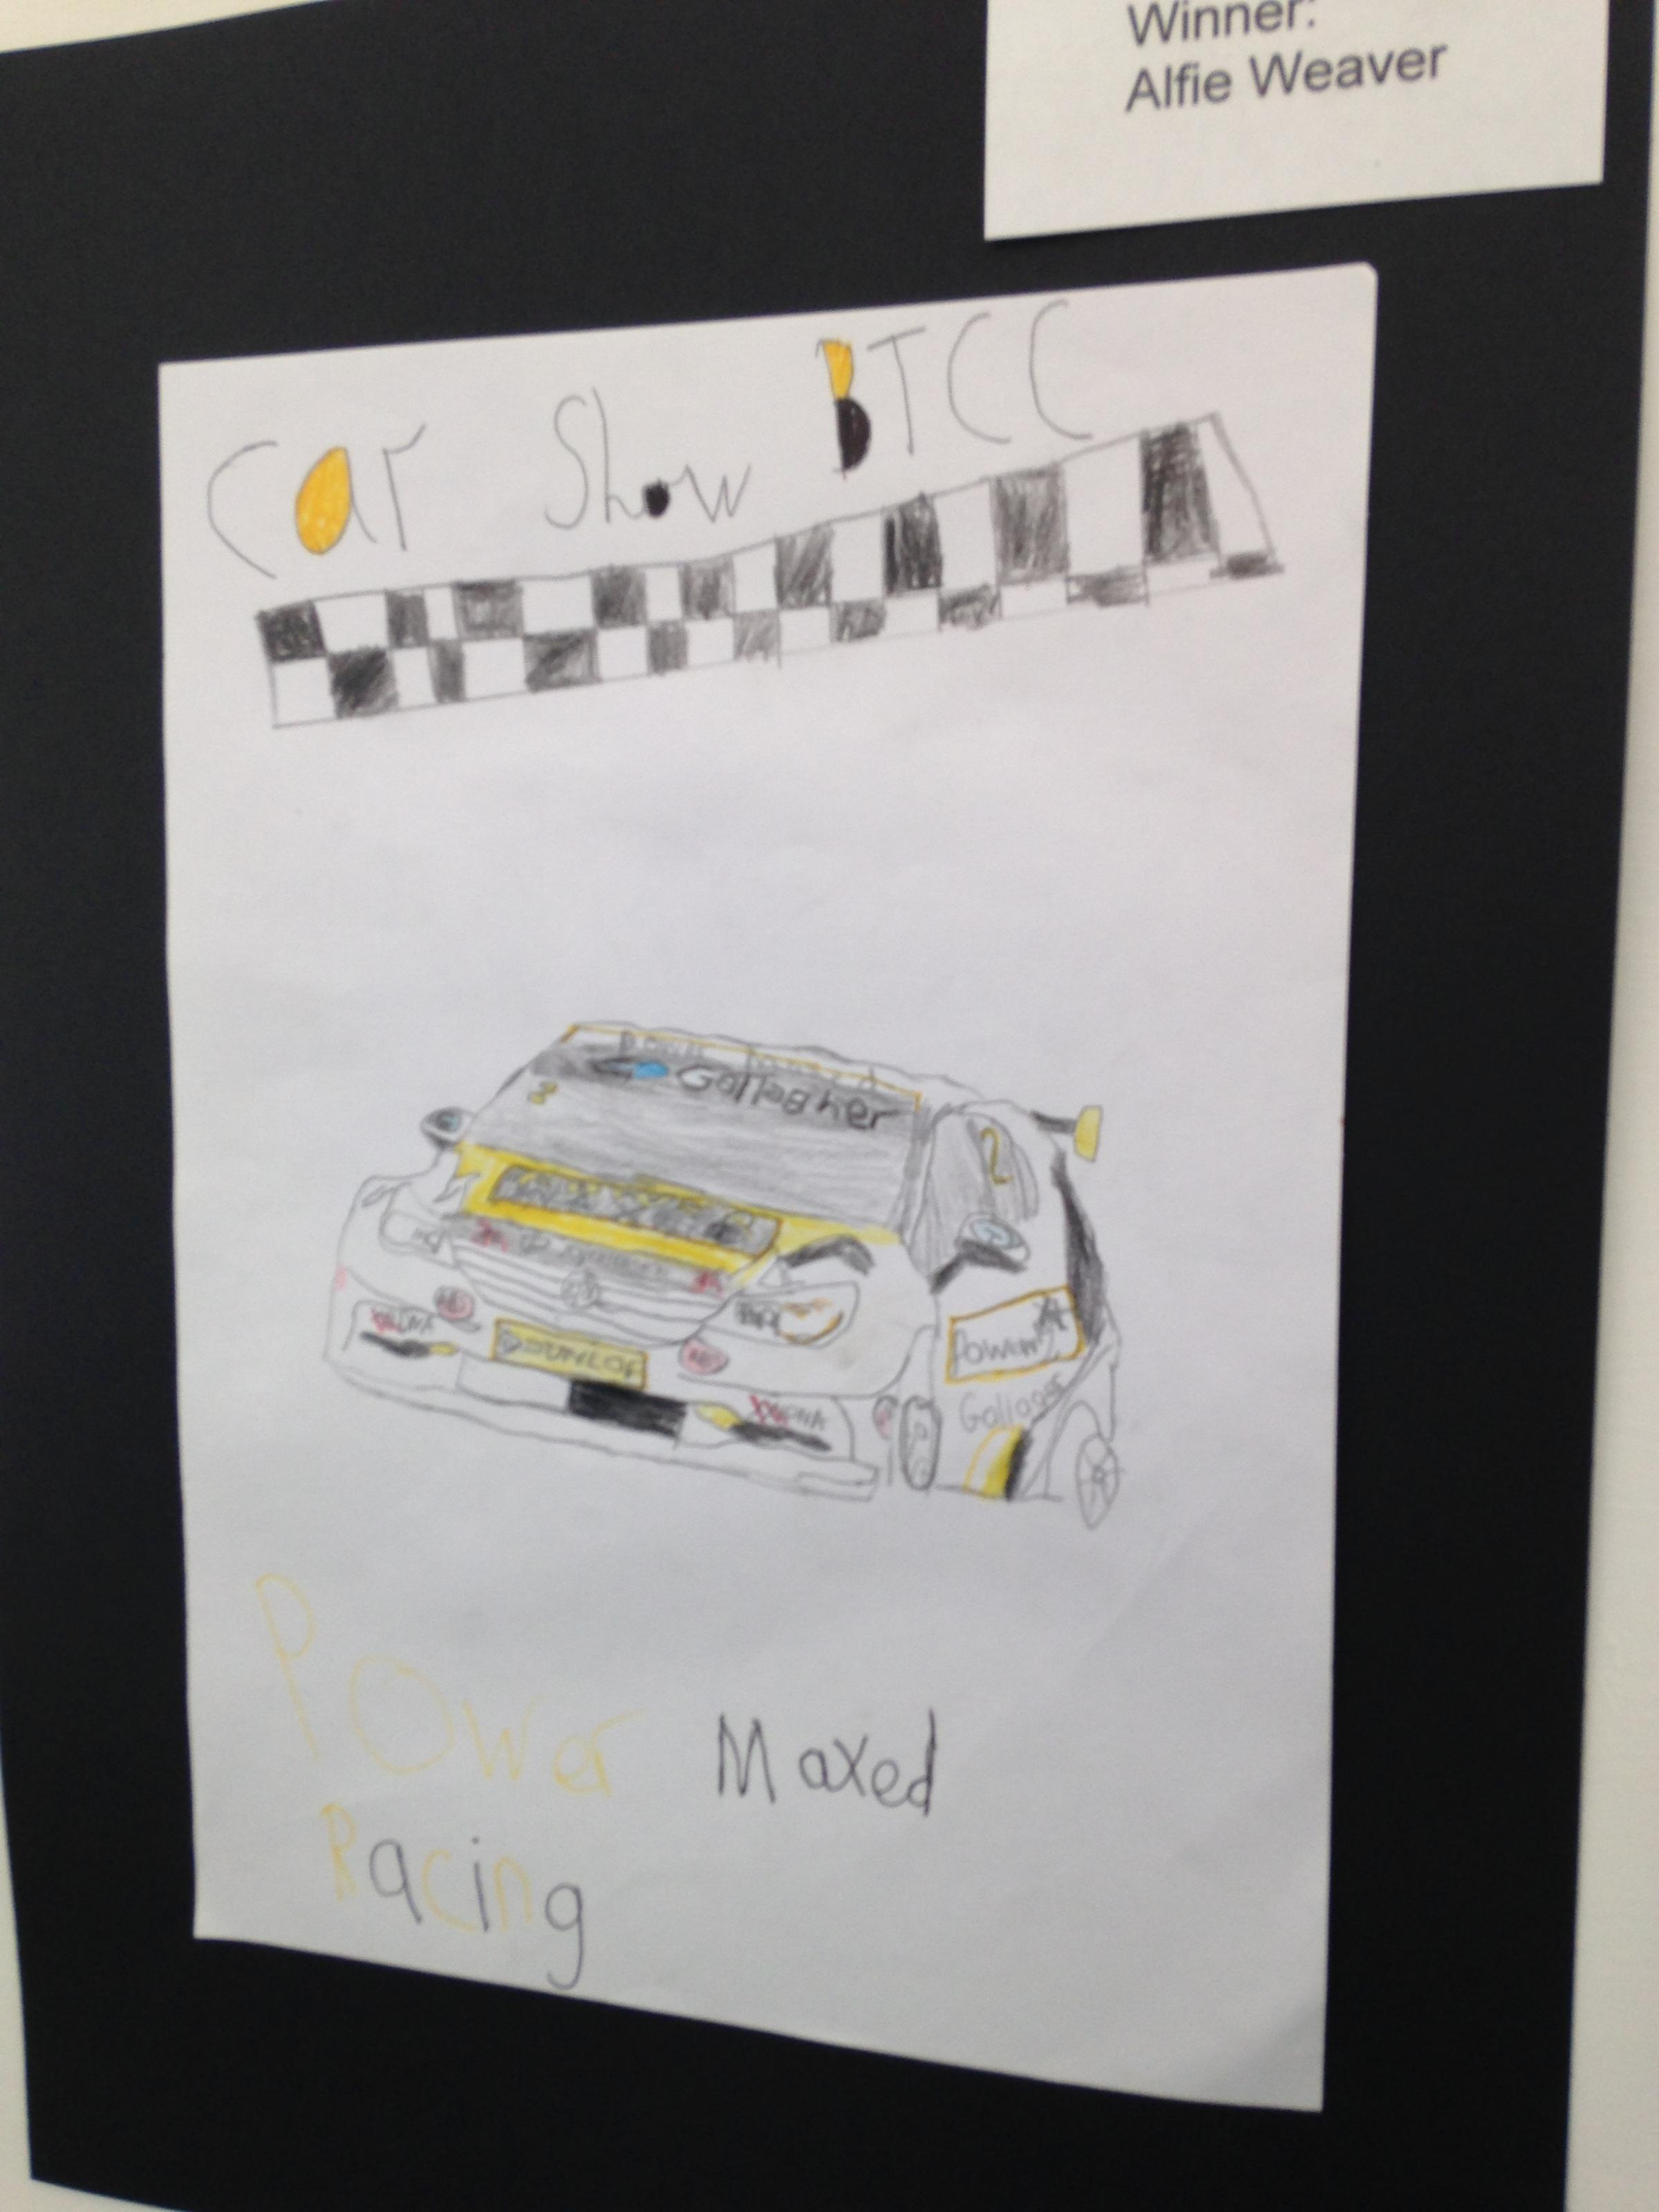 Last year's winning entry by Alfie Weaver